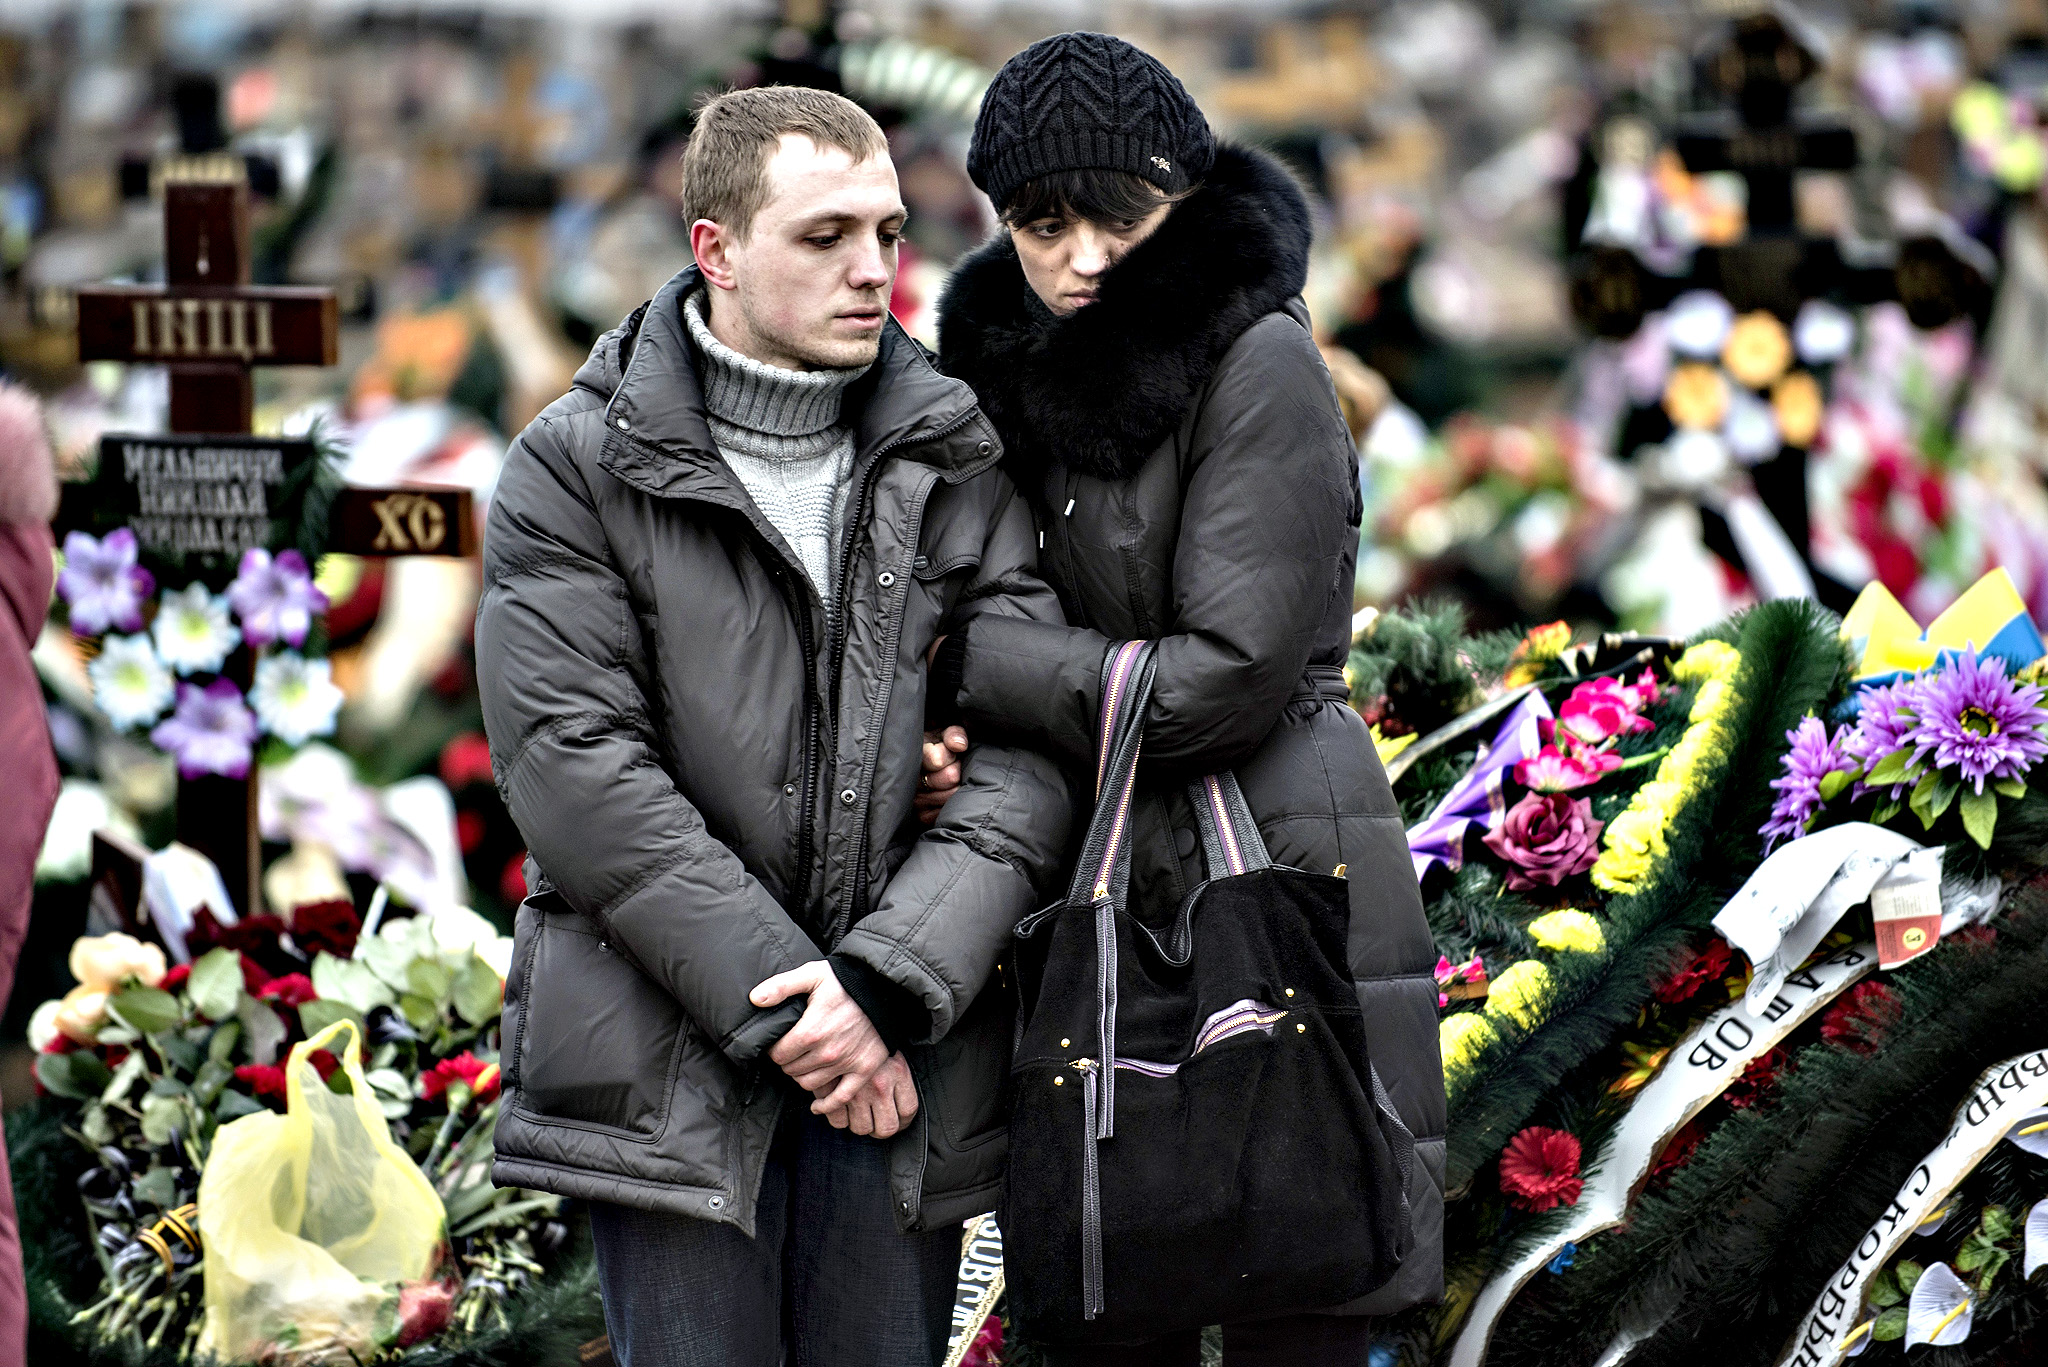 Relatives of Alexander Demyanenko, a victim of Saturday's shelling, stand near a grave during funerals in Mariupol, Ukraine, on Monday Jan. 26, 2015. At least 5,100 people have been killed in eastern Ukraine since fighting began in April, but violence this week was the most intense since a cease-fire deal was signed in September.